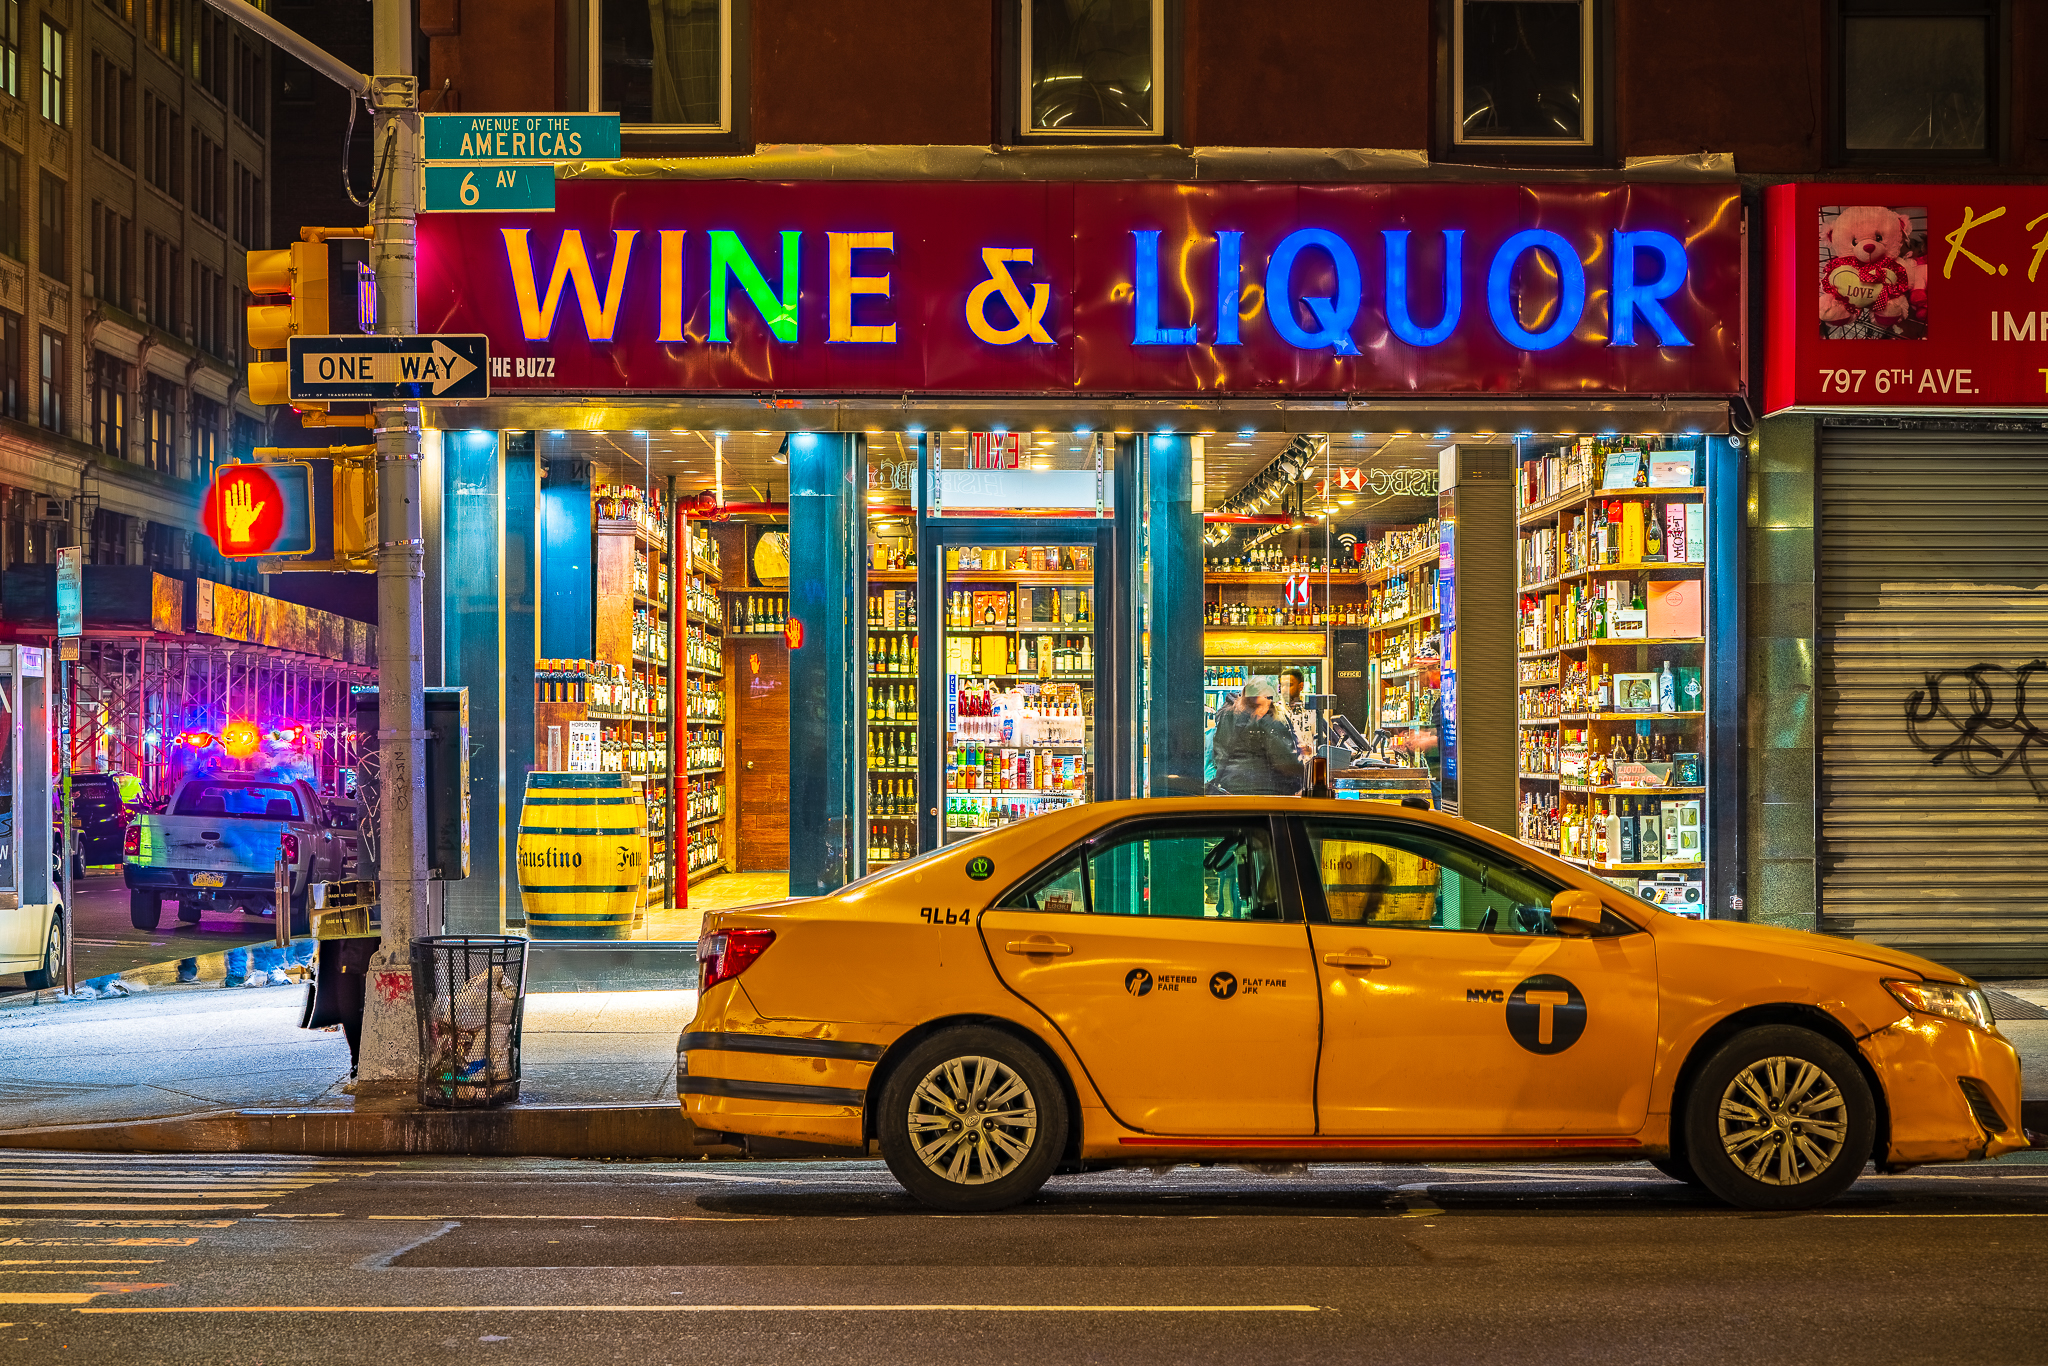 a photo of a taxi cab in front of a liquor store in new york city